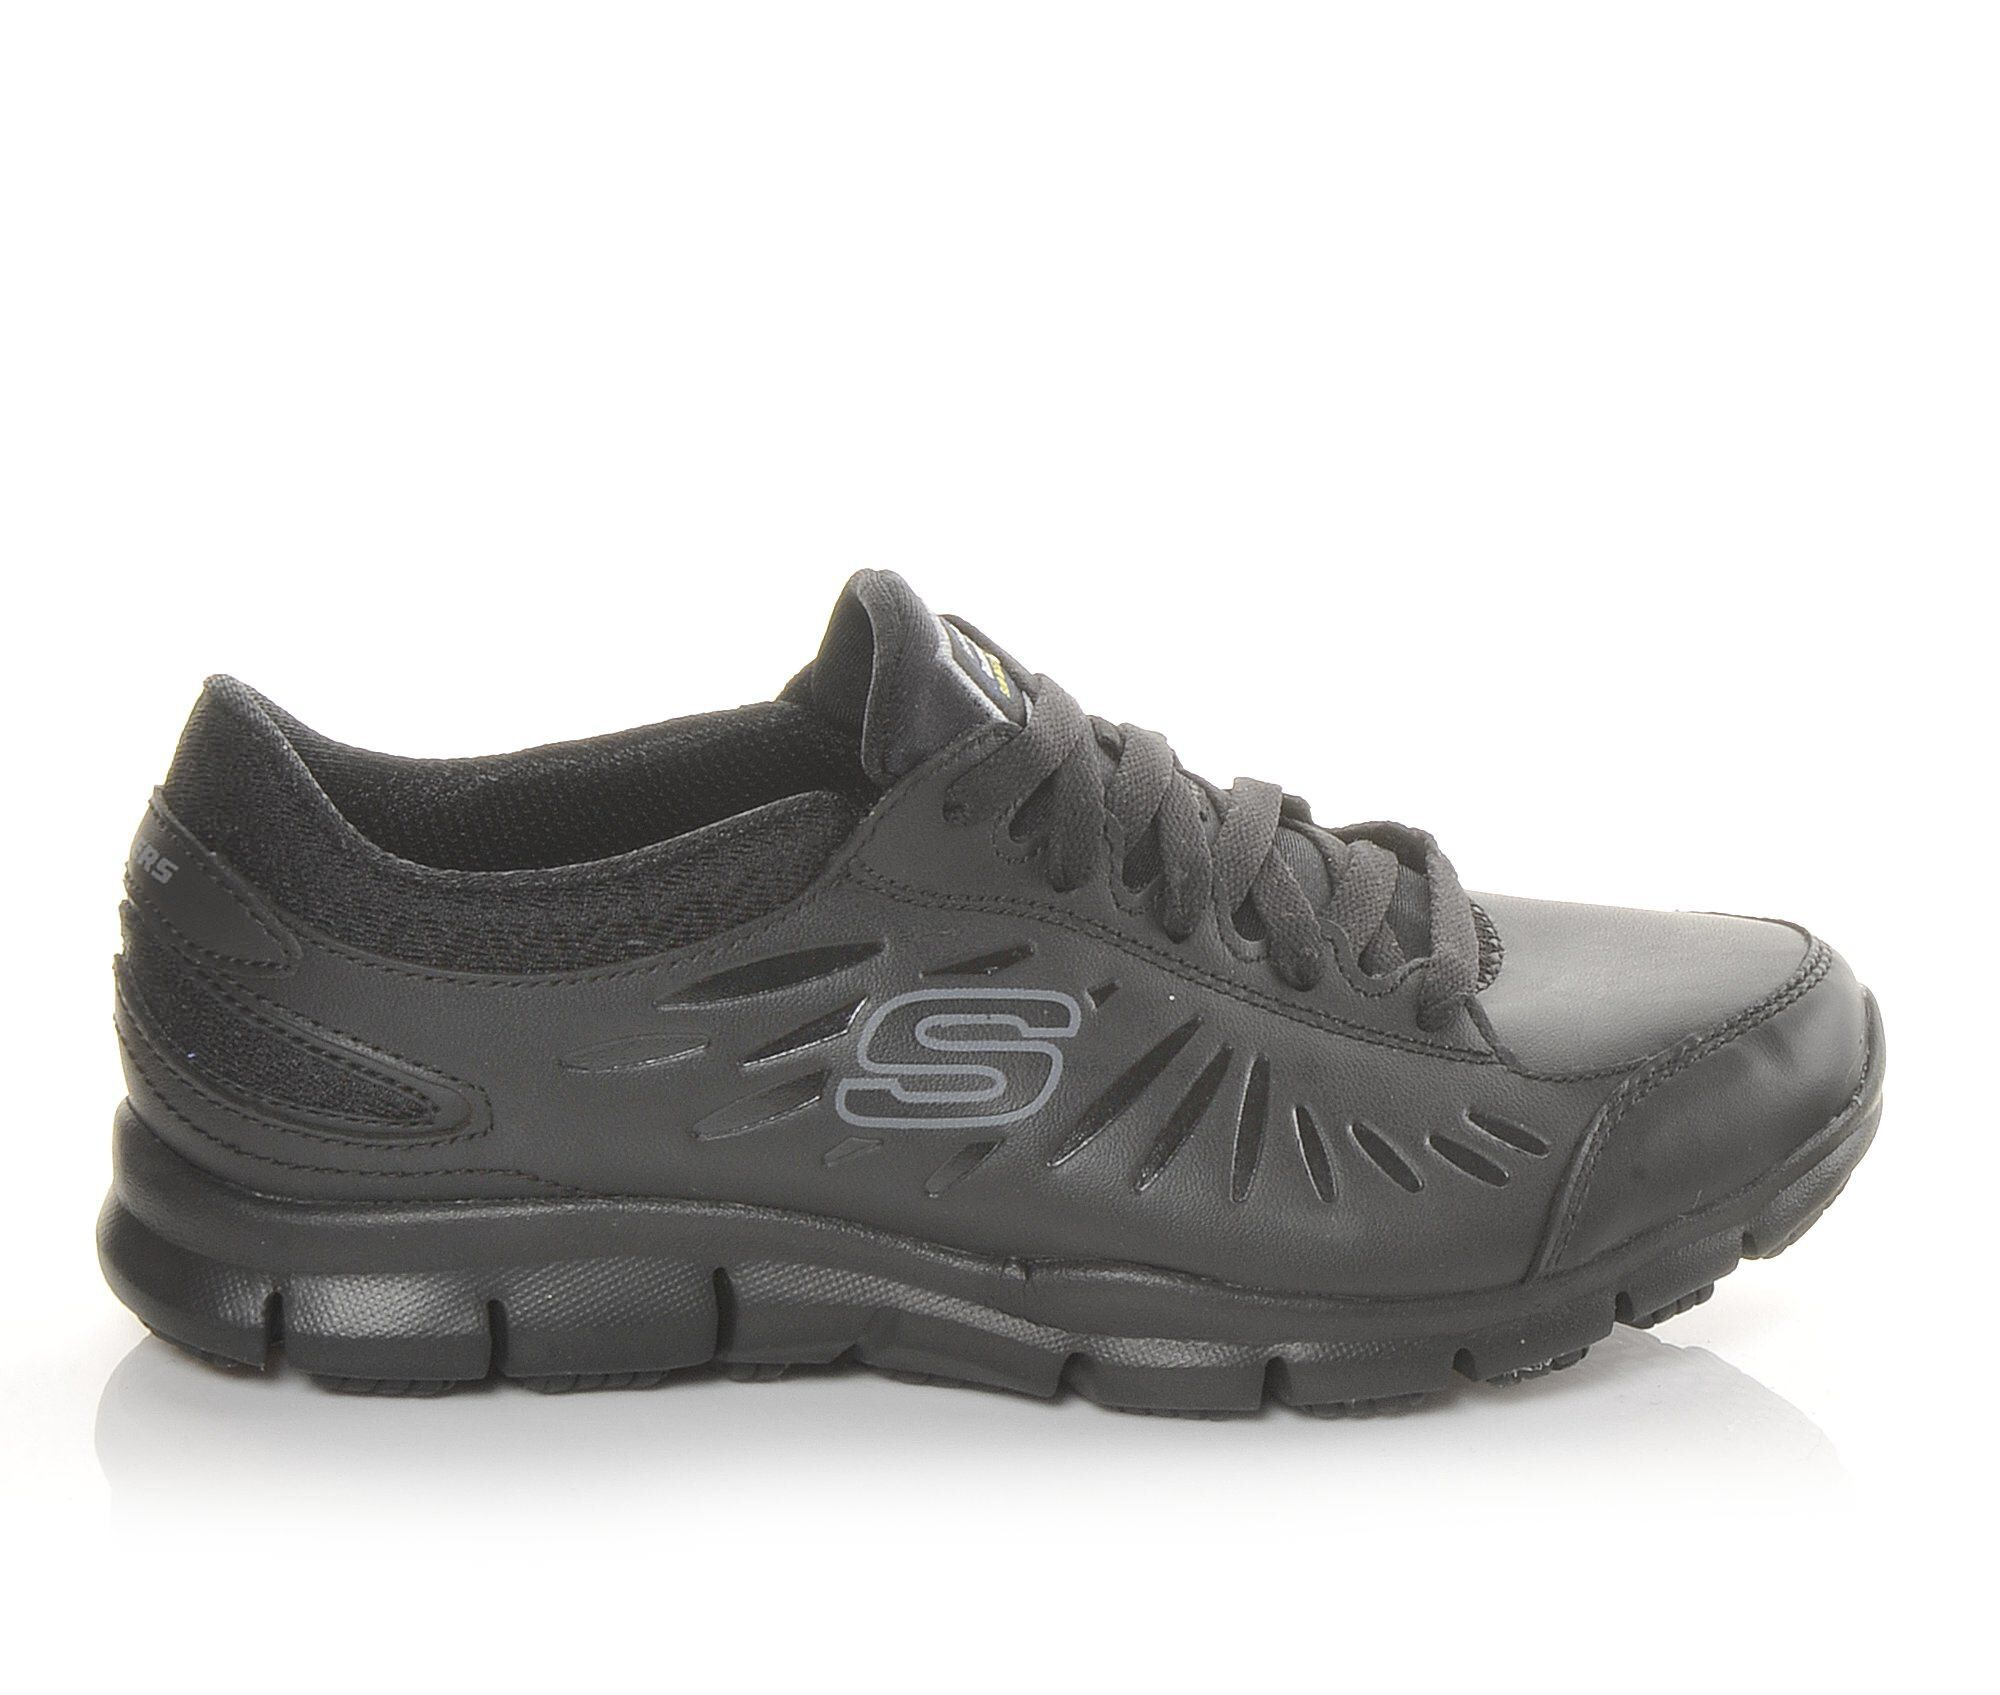 Women's Skechers Work Eldred 76551 Slip Resistant Shoes Black